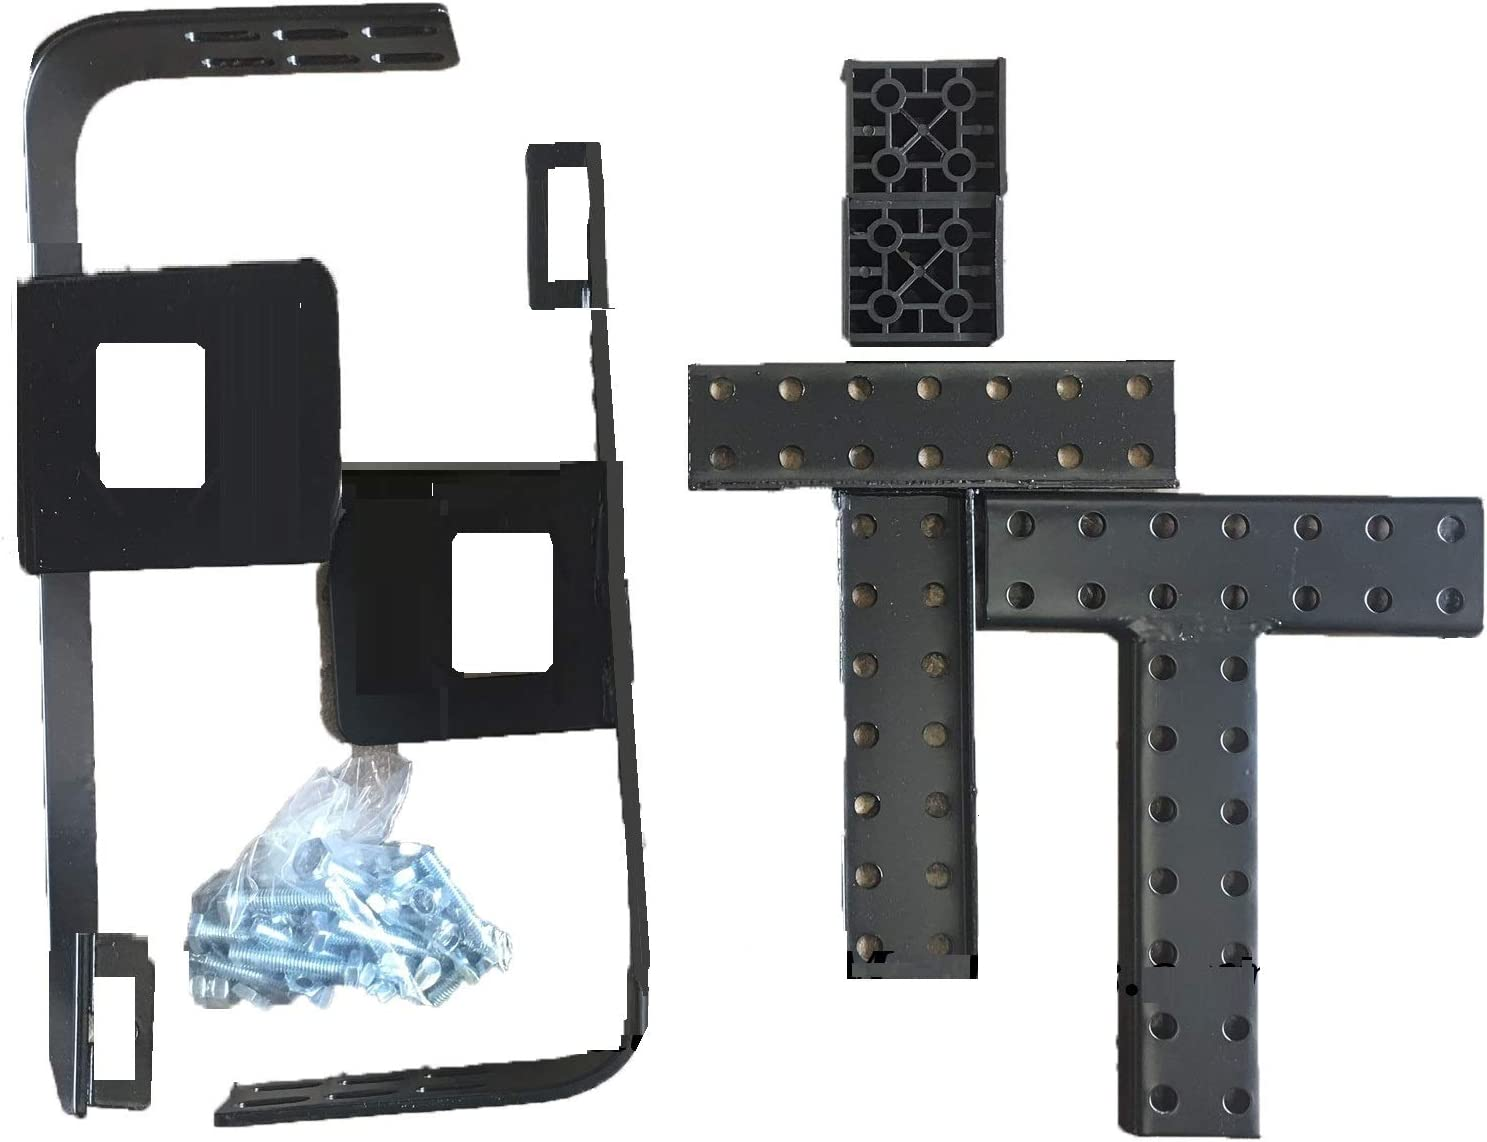 Bed Frame Footboard Extension Brackets Attachment Kit Set Of 2 Twin, Full, Q...